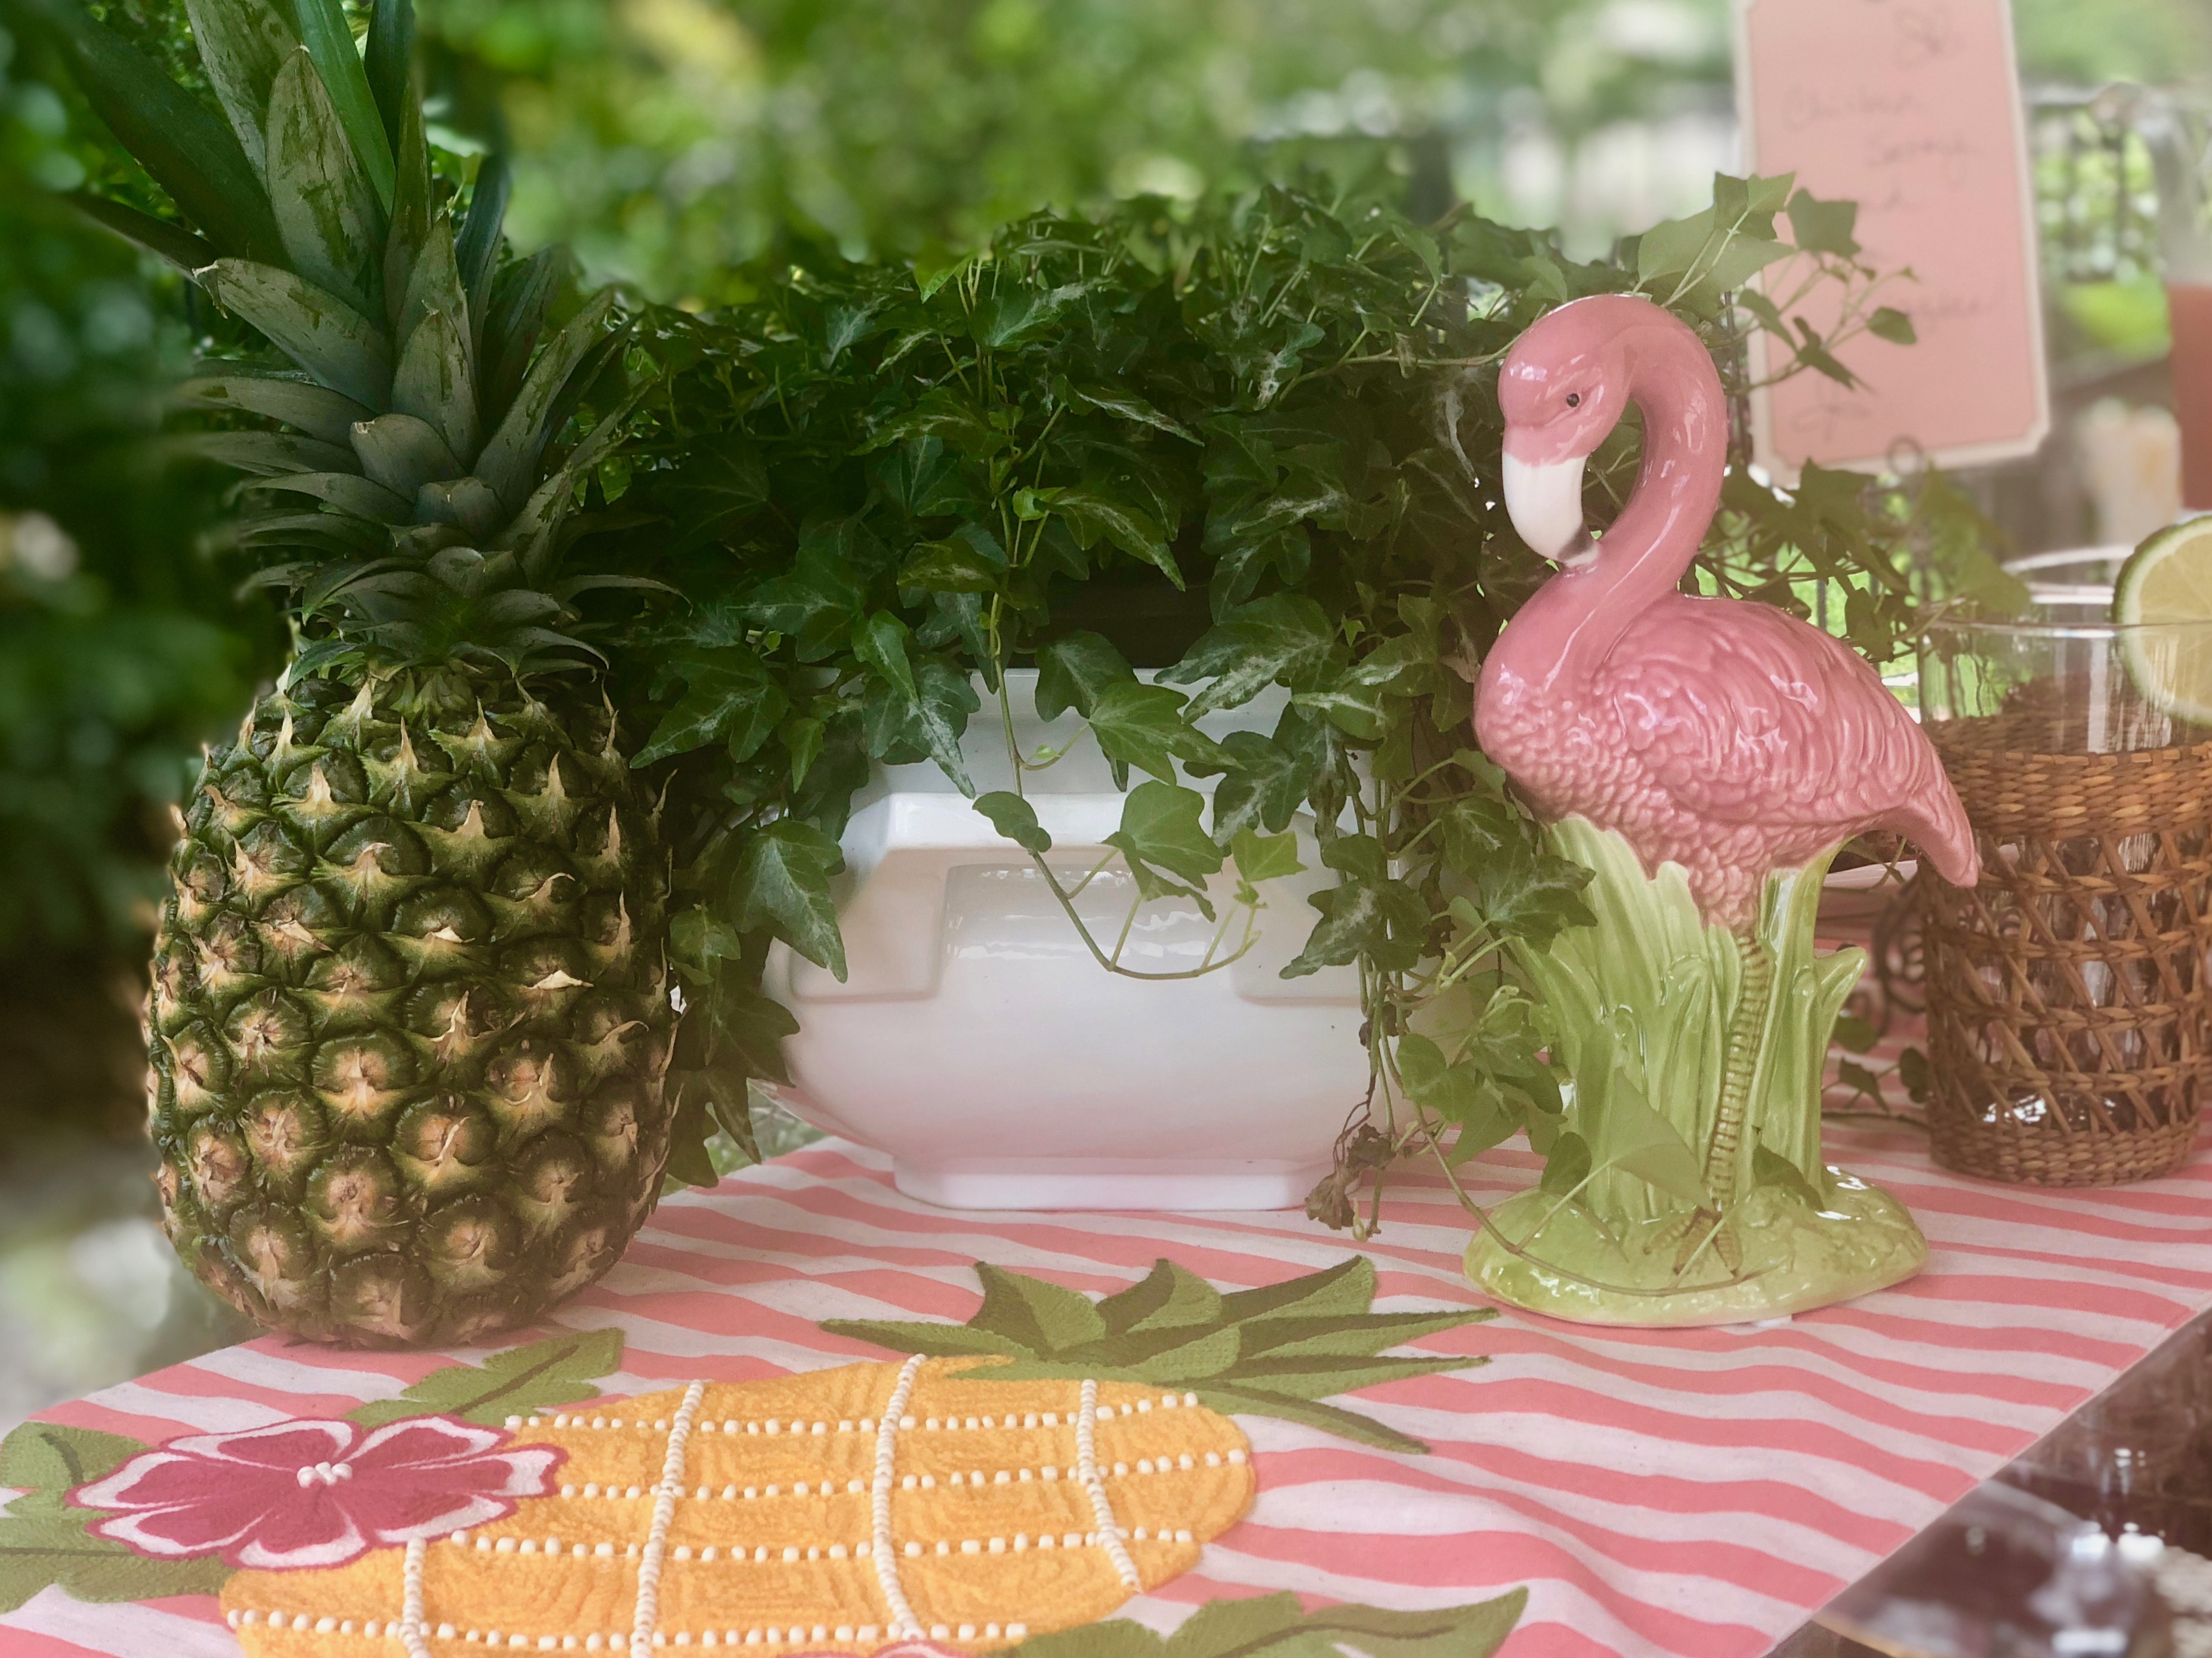 Fresh pineapple with flamingo, ivy plant, rum drink and fun table runner on our patio at the bar